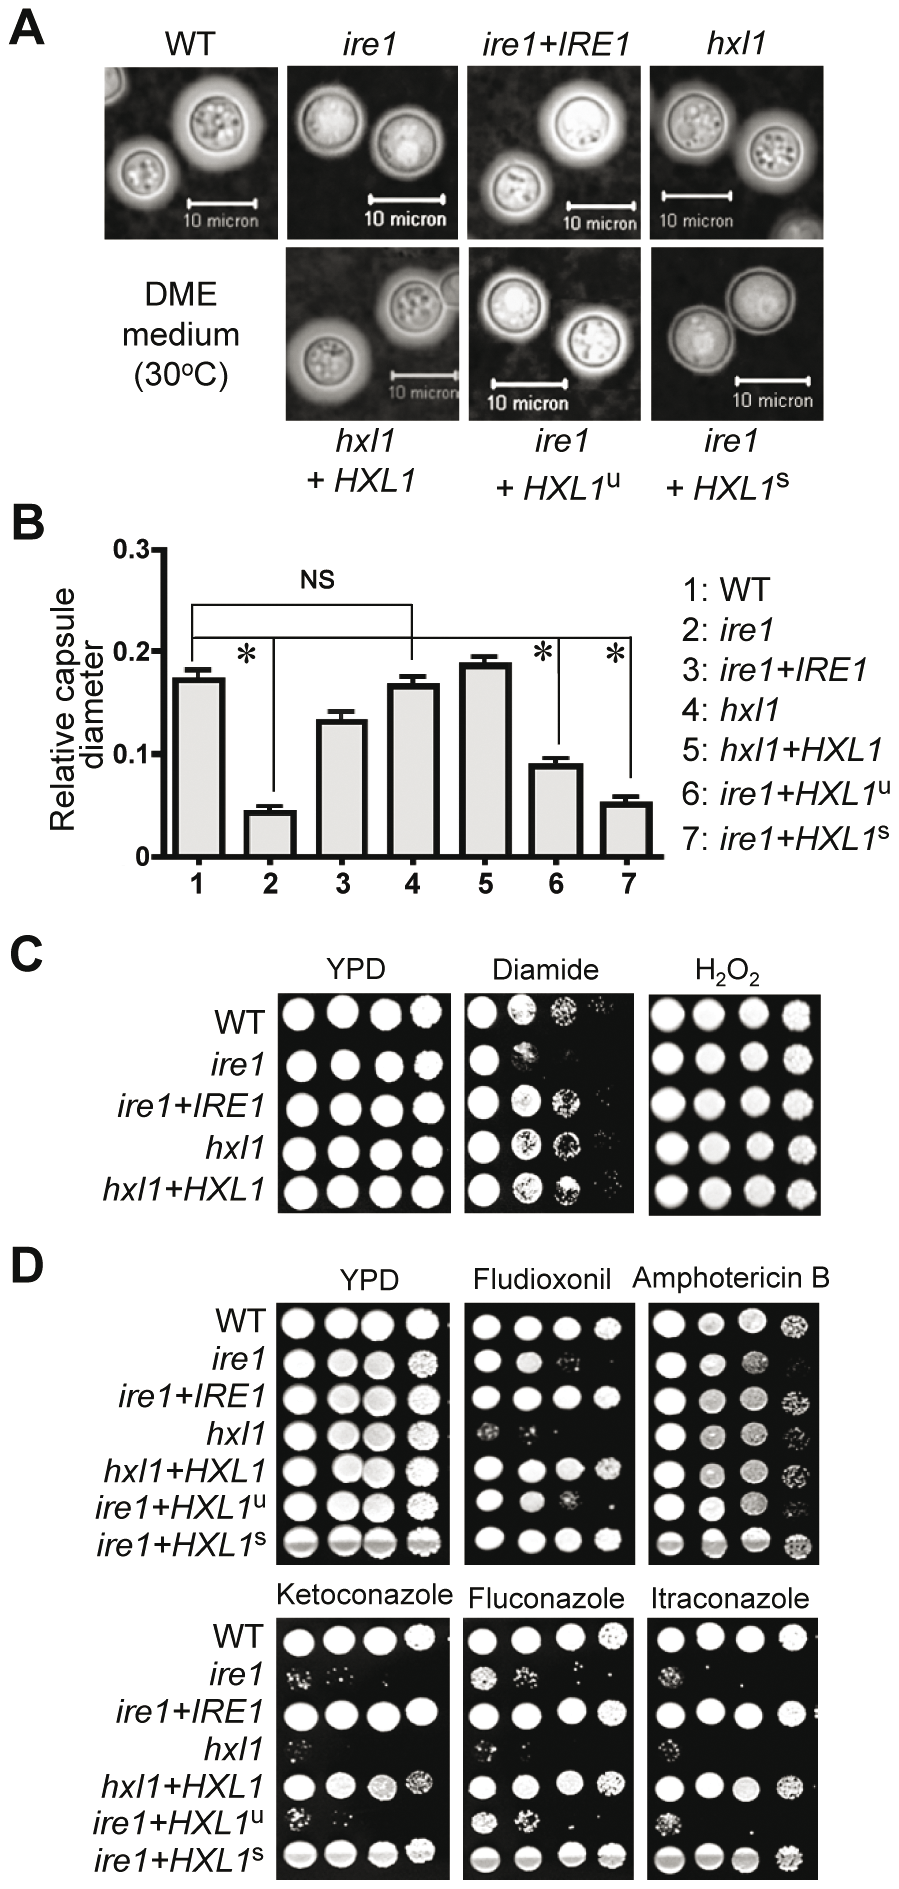 Ire1 controls capsule formation, oxidative stress responses, and antifungal drugs resistance in Hxl1 dependent- and independent manners in <i>C. neformasn</i>.